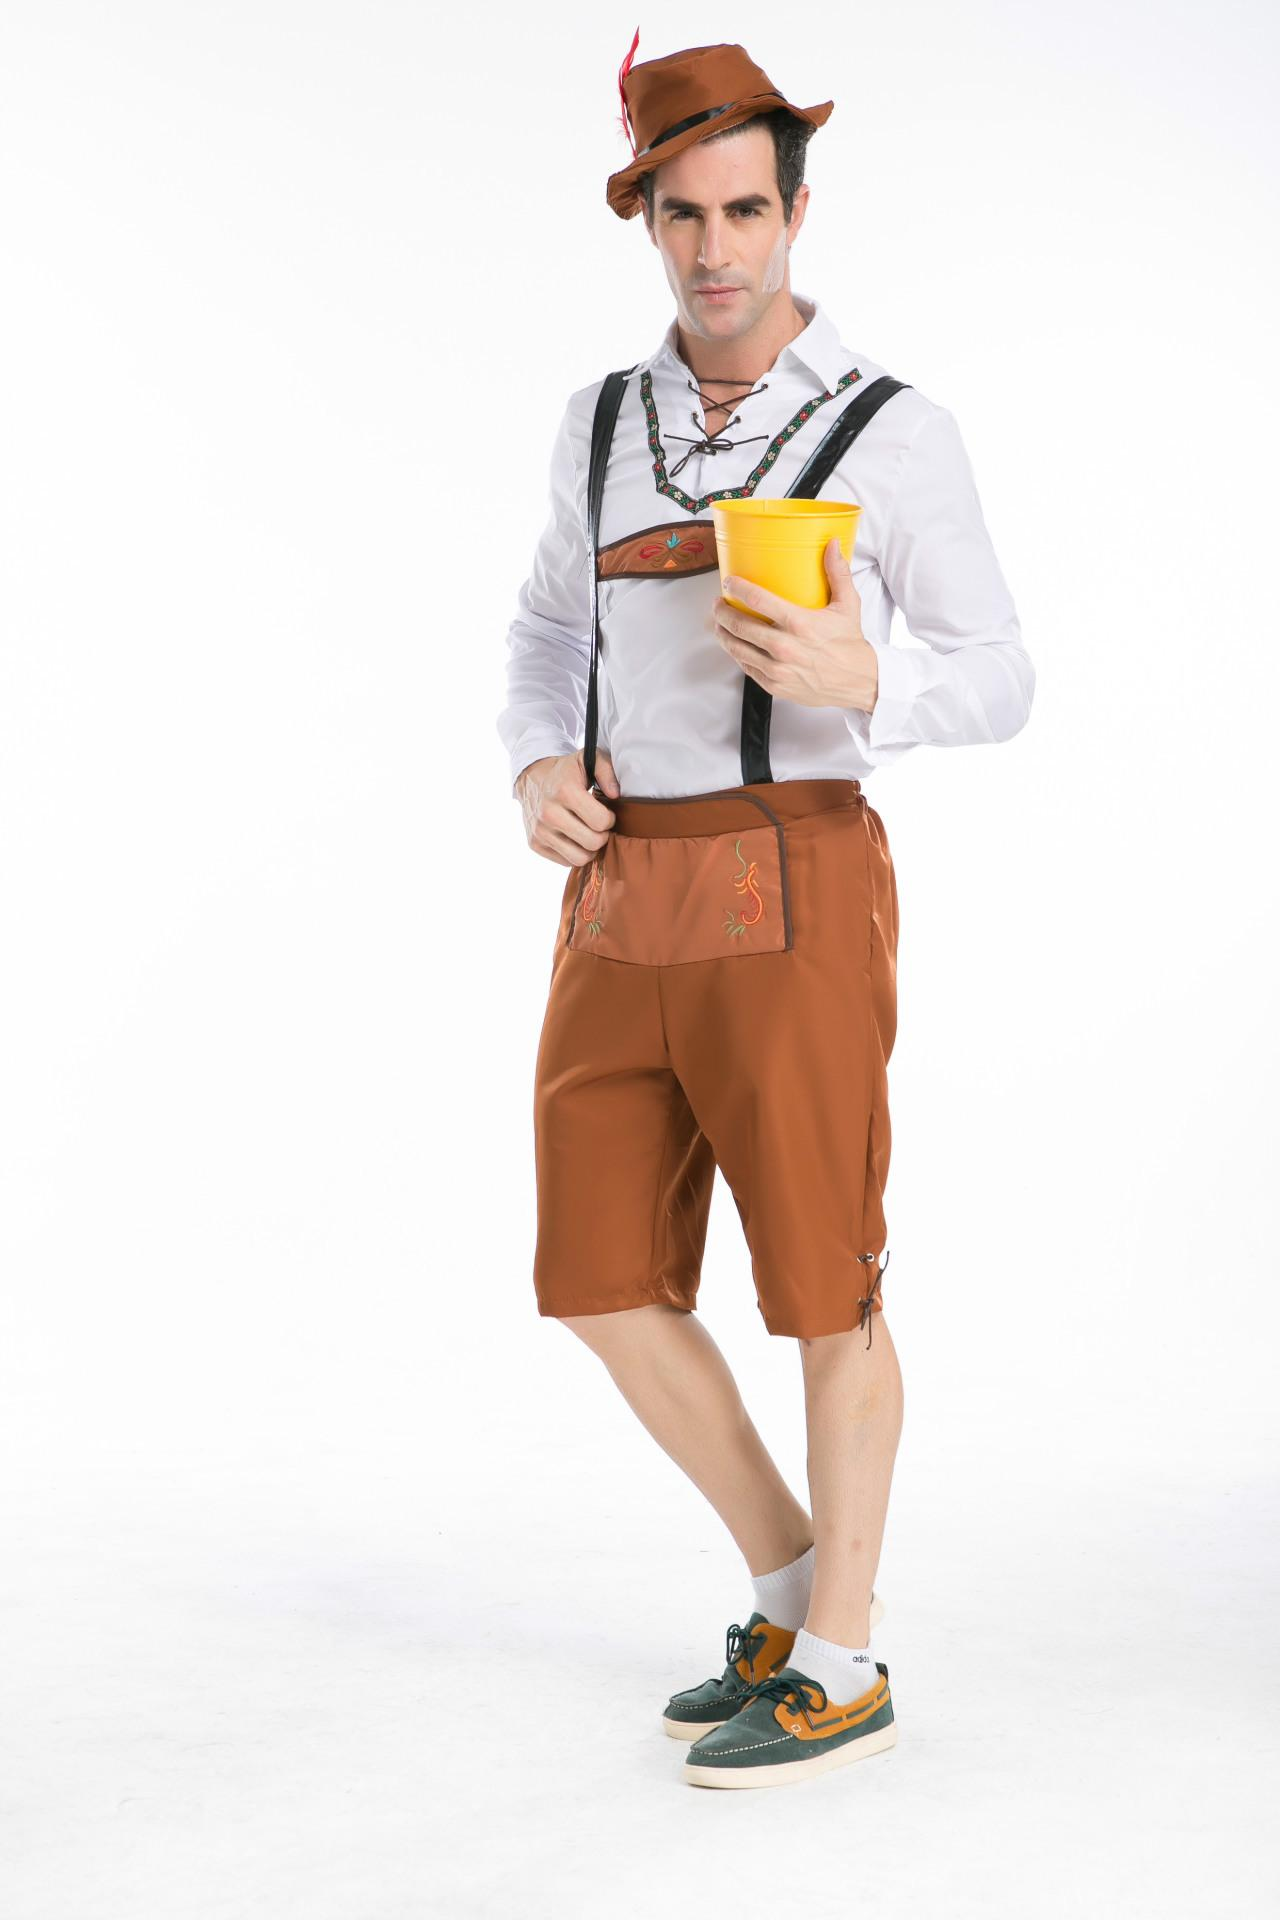 Men\u0027s Oktoberfest Lederhosen with Suspenders Costume For Man Role  Play,Stage Costuming Mardi Gras Carnival Party Size S M L XL XXL